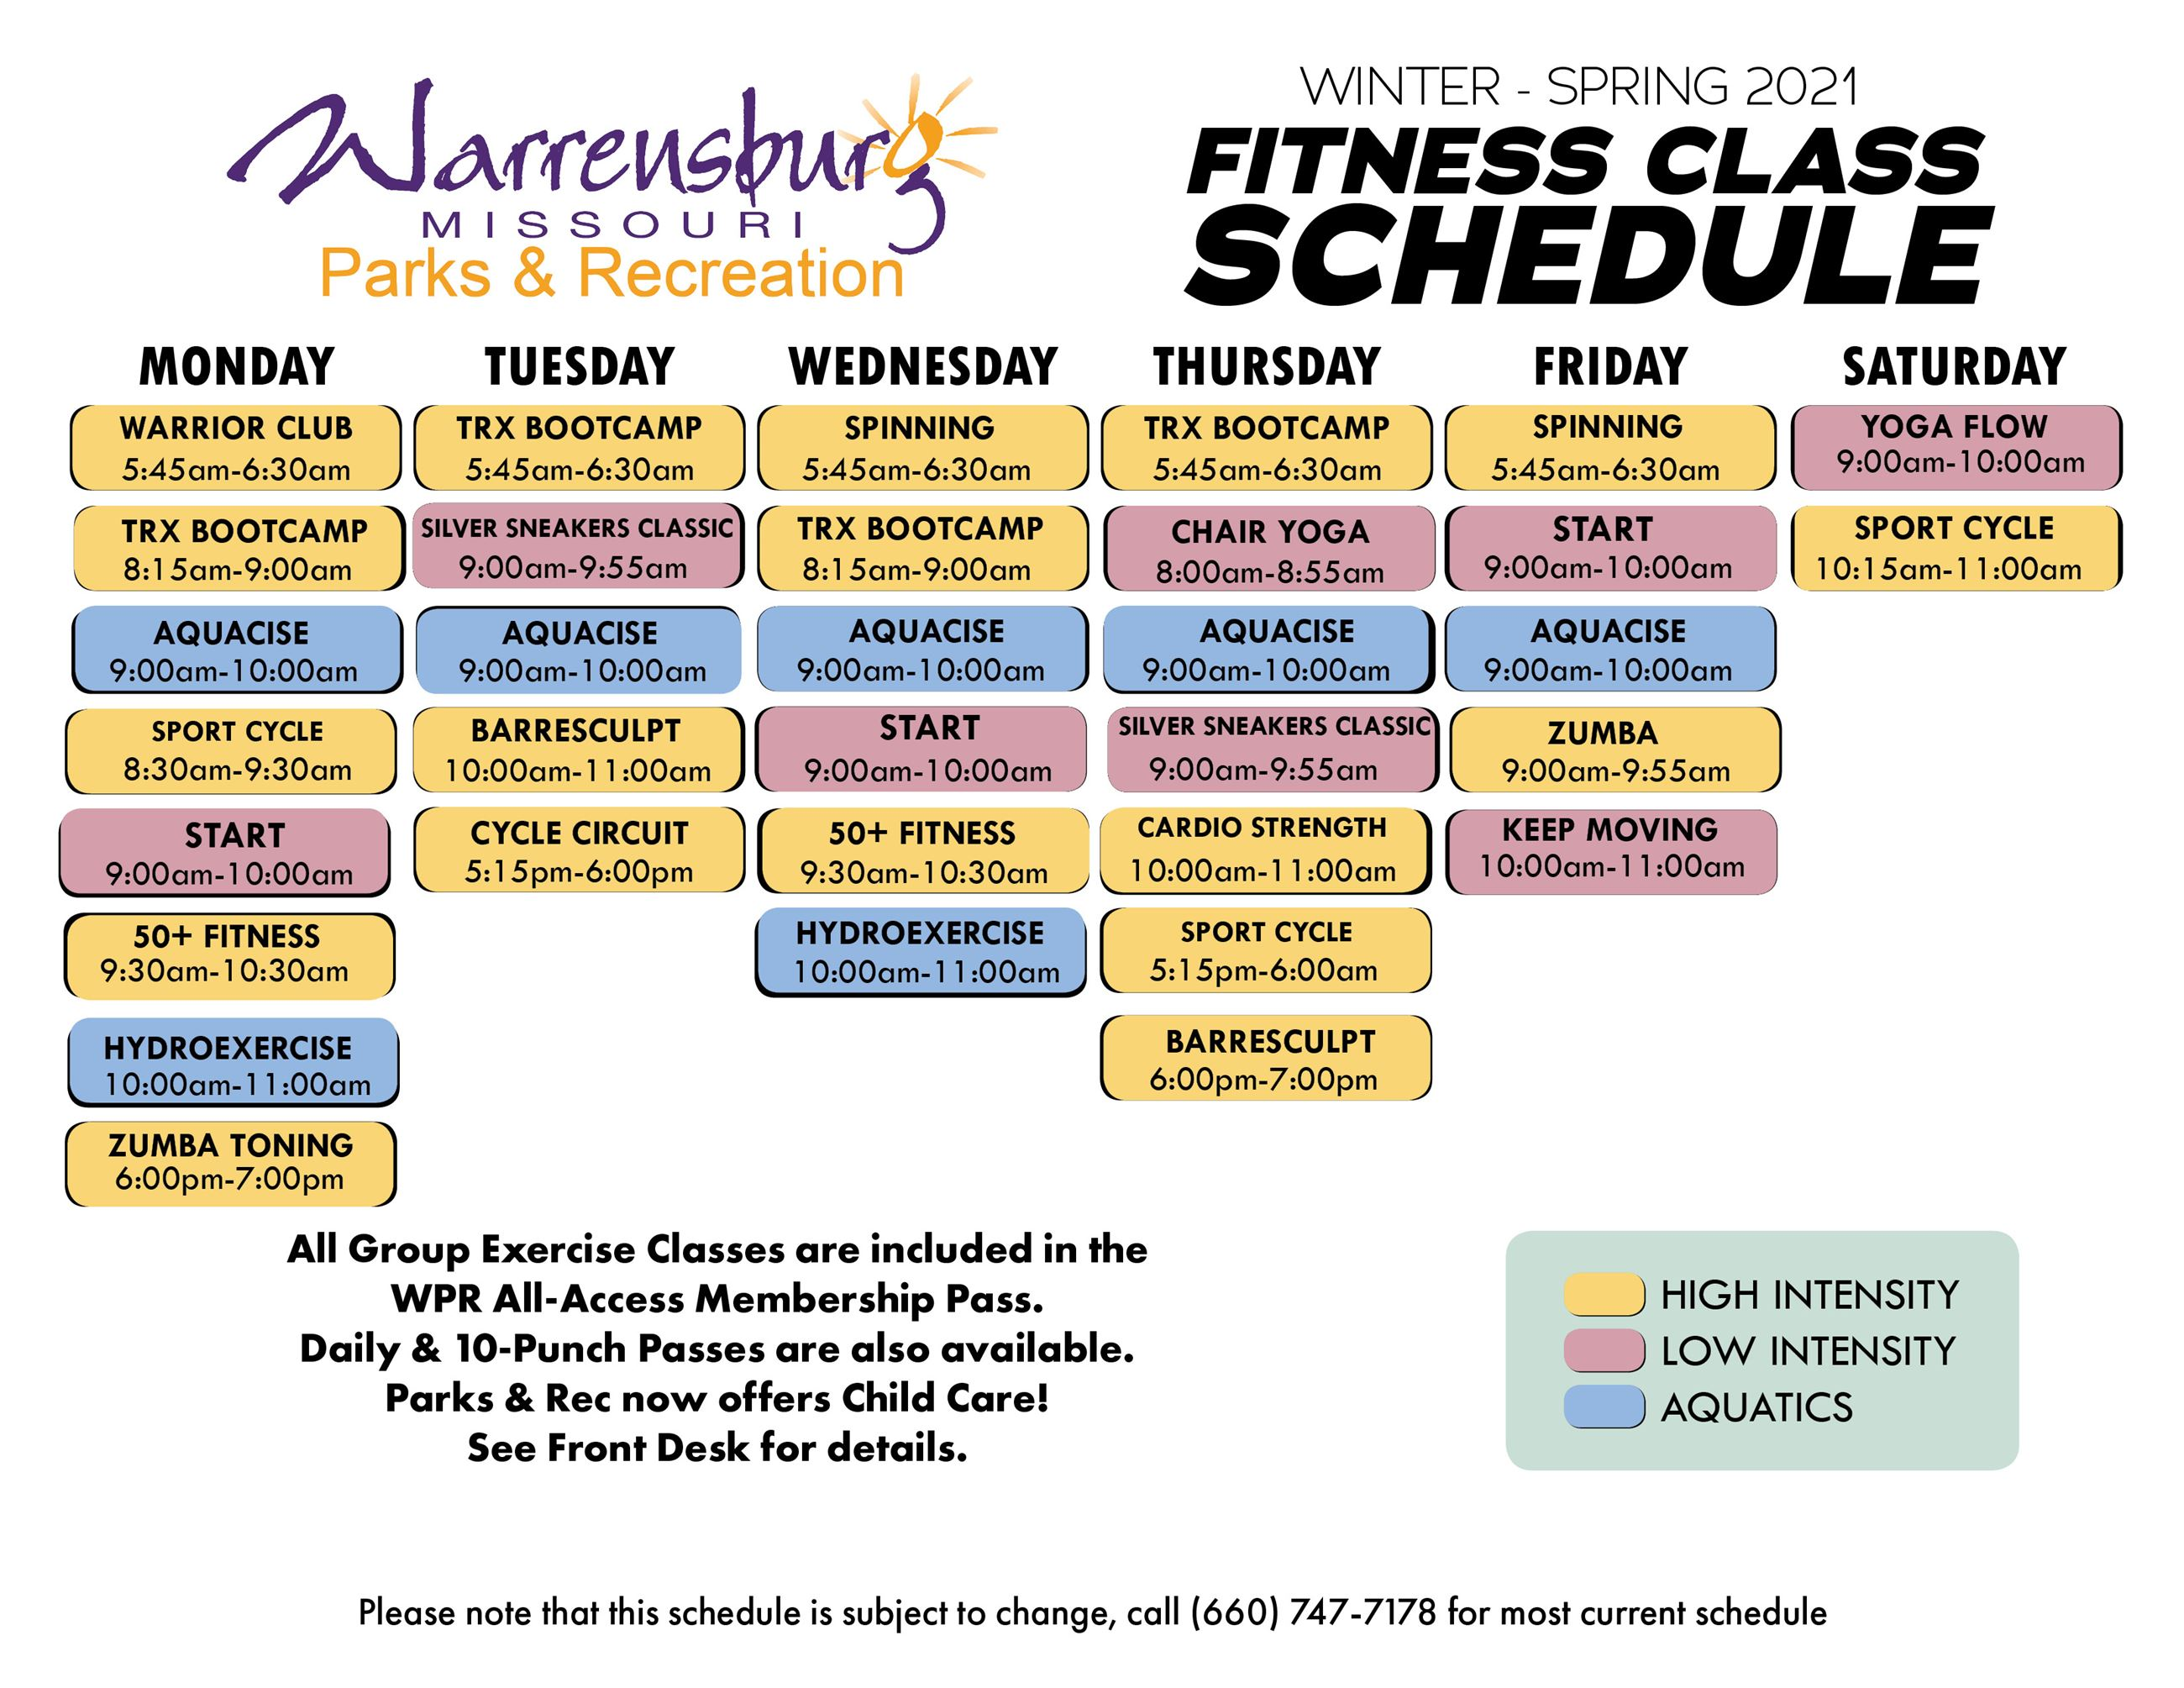 Fitness Class Schedule Winter-Spring 2021 page 1 12-29-20